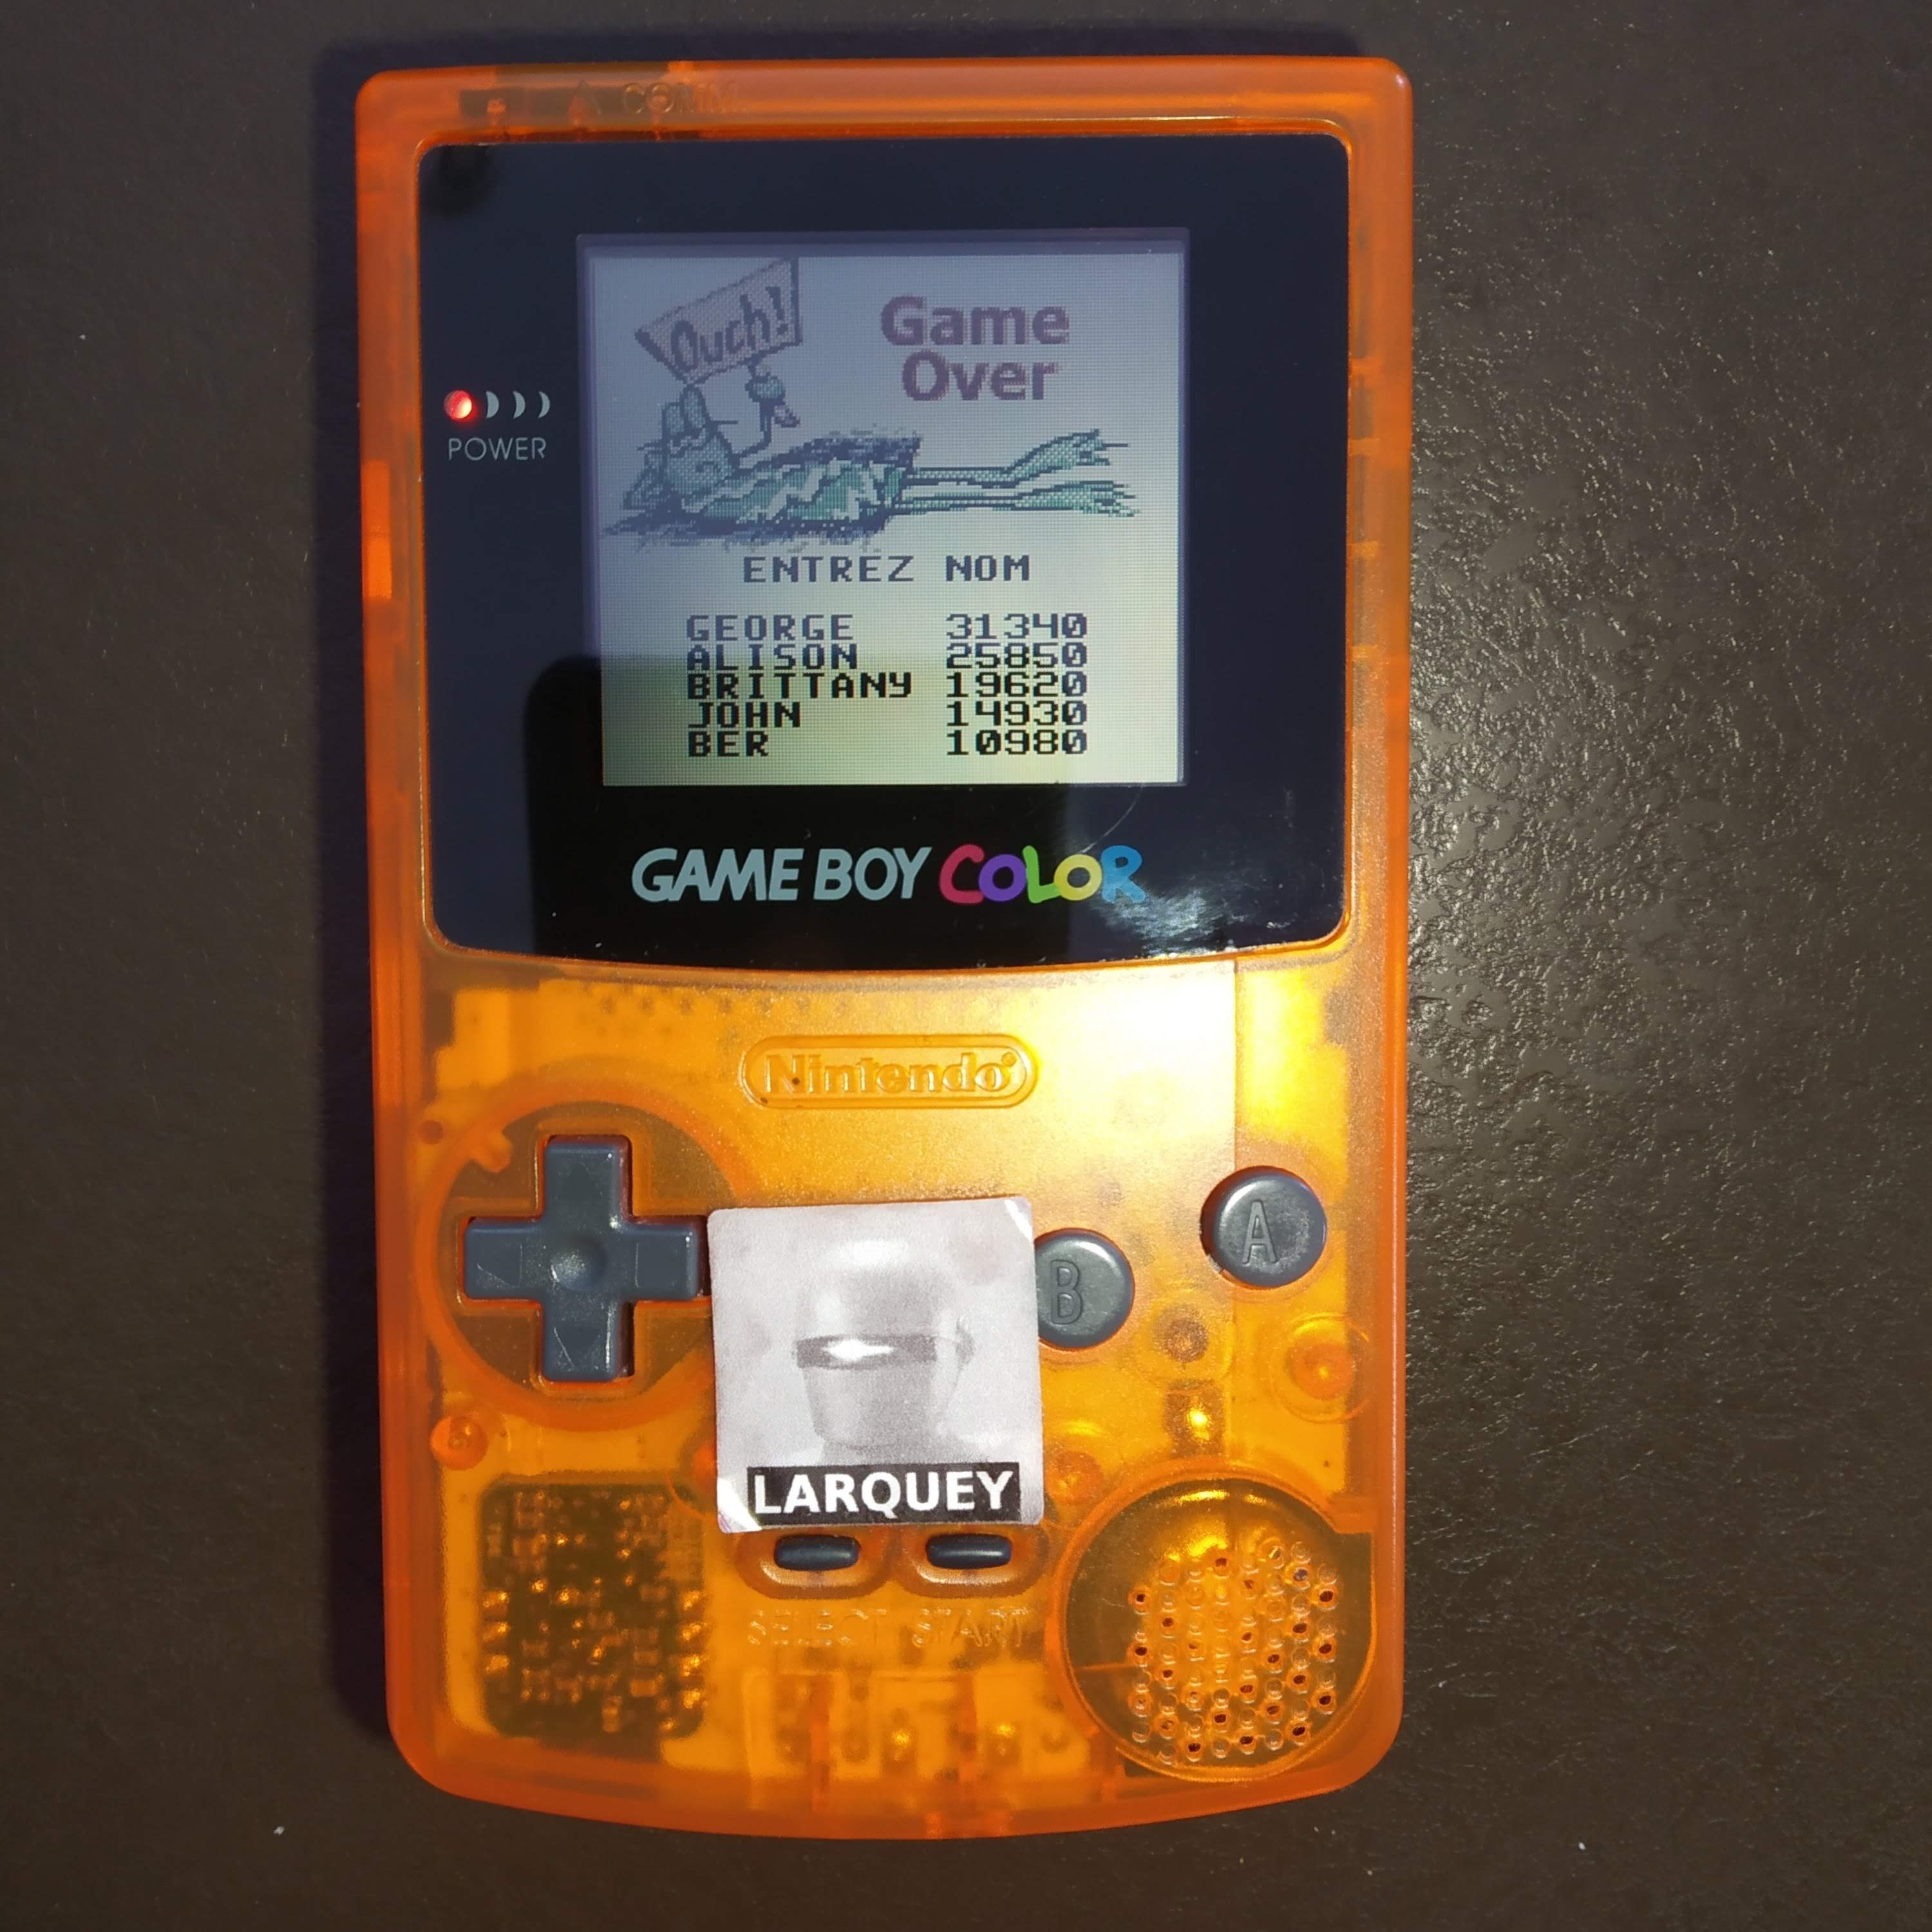 Larquey: Frogger (Game Boy Color) 10,980 points on 2020-07-31 03:02:14